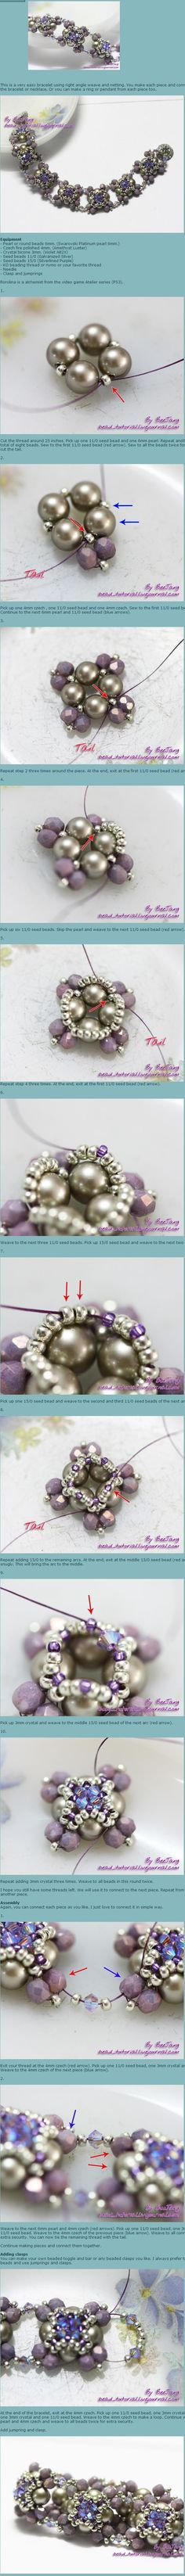 Beaded Beads TUTORIAL bracelet